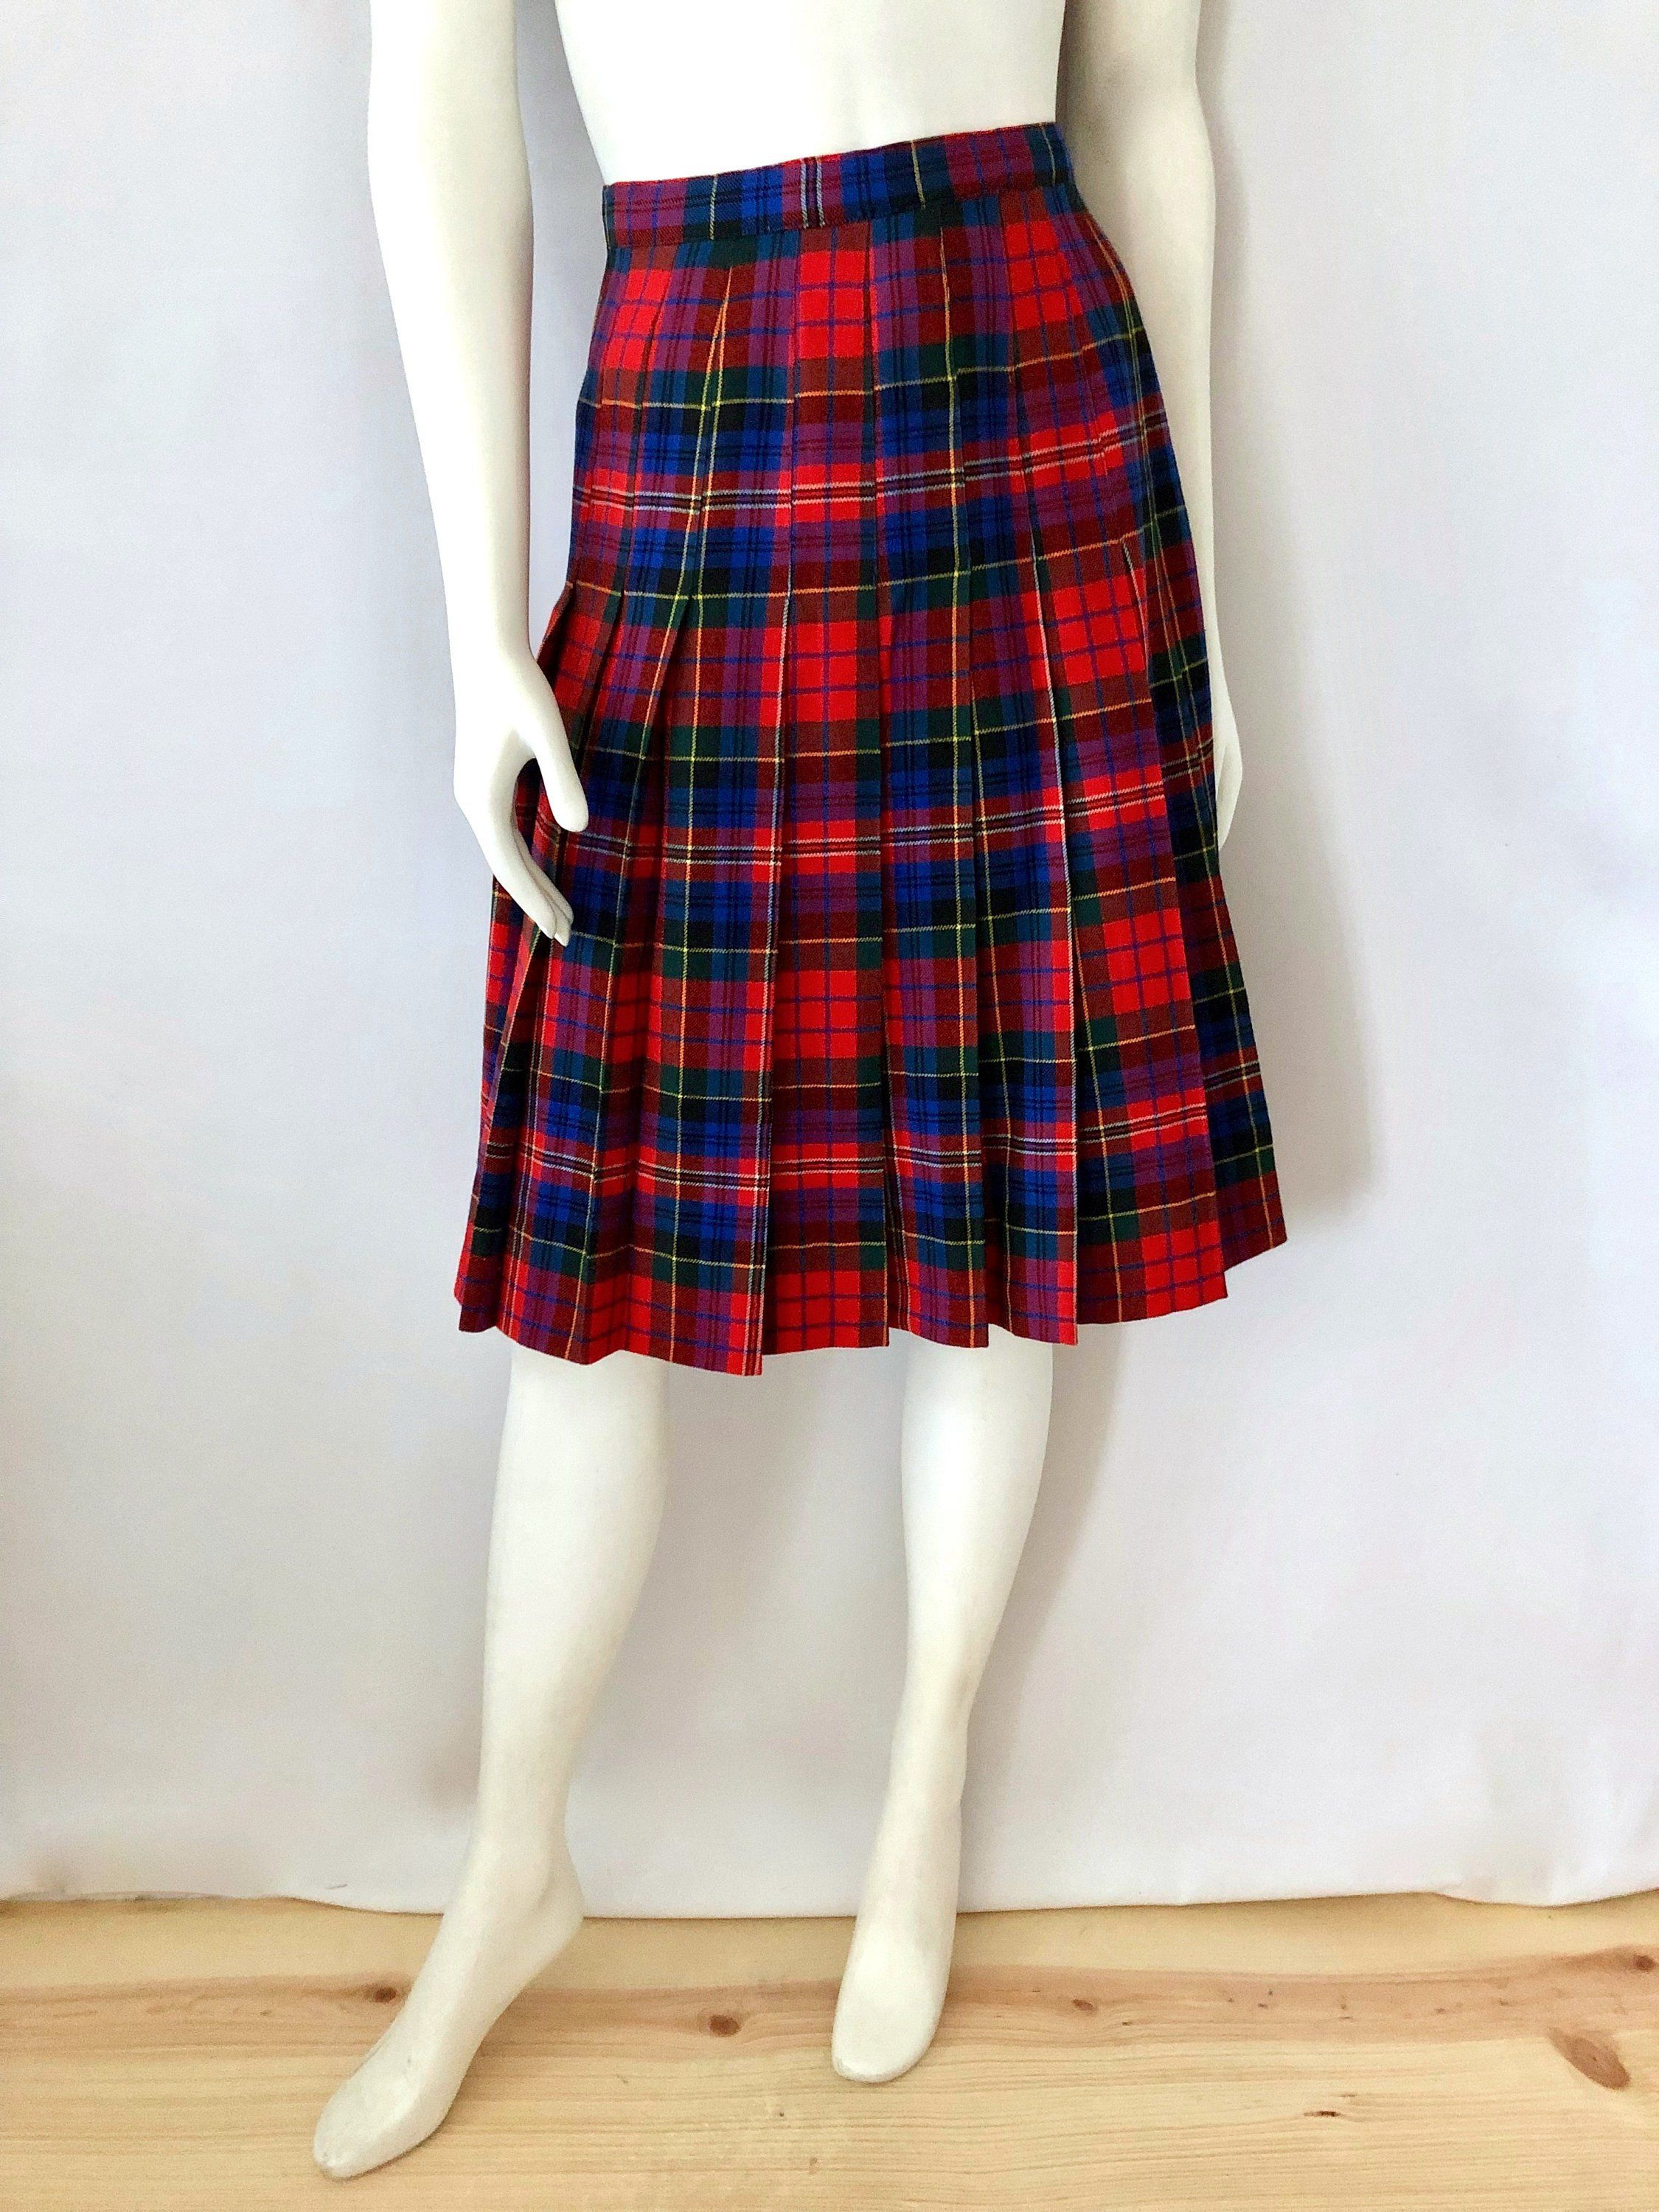 508d22374b Vintage Women's 60's/70's Red, Tartan, Plaid, Pleated, Skirt (S) by  Freshandswanky on Etsy